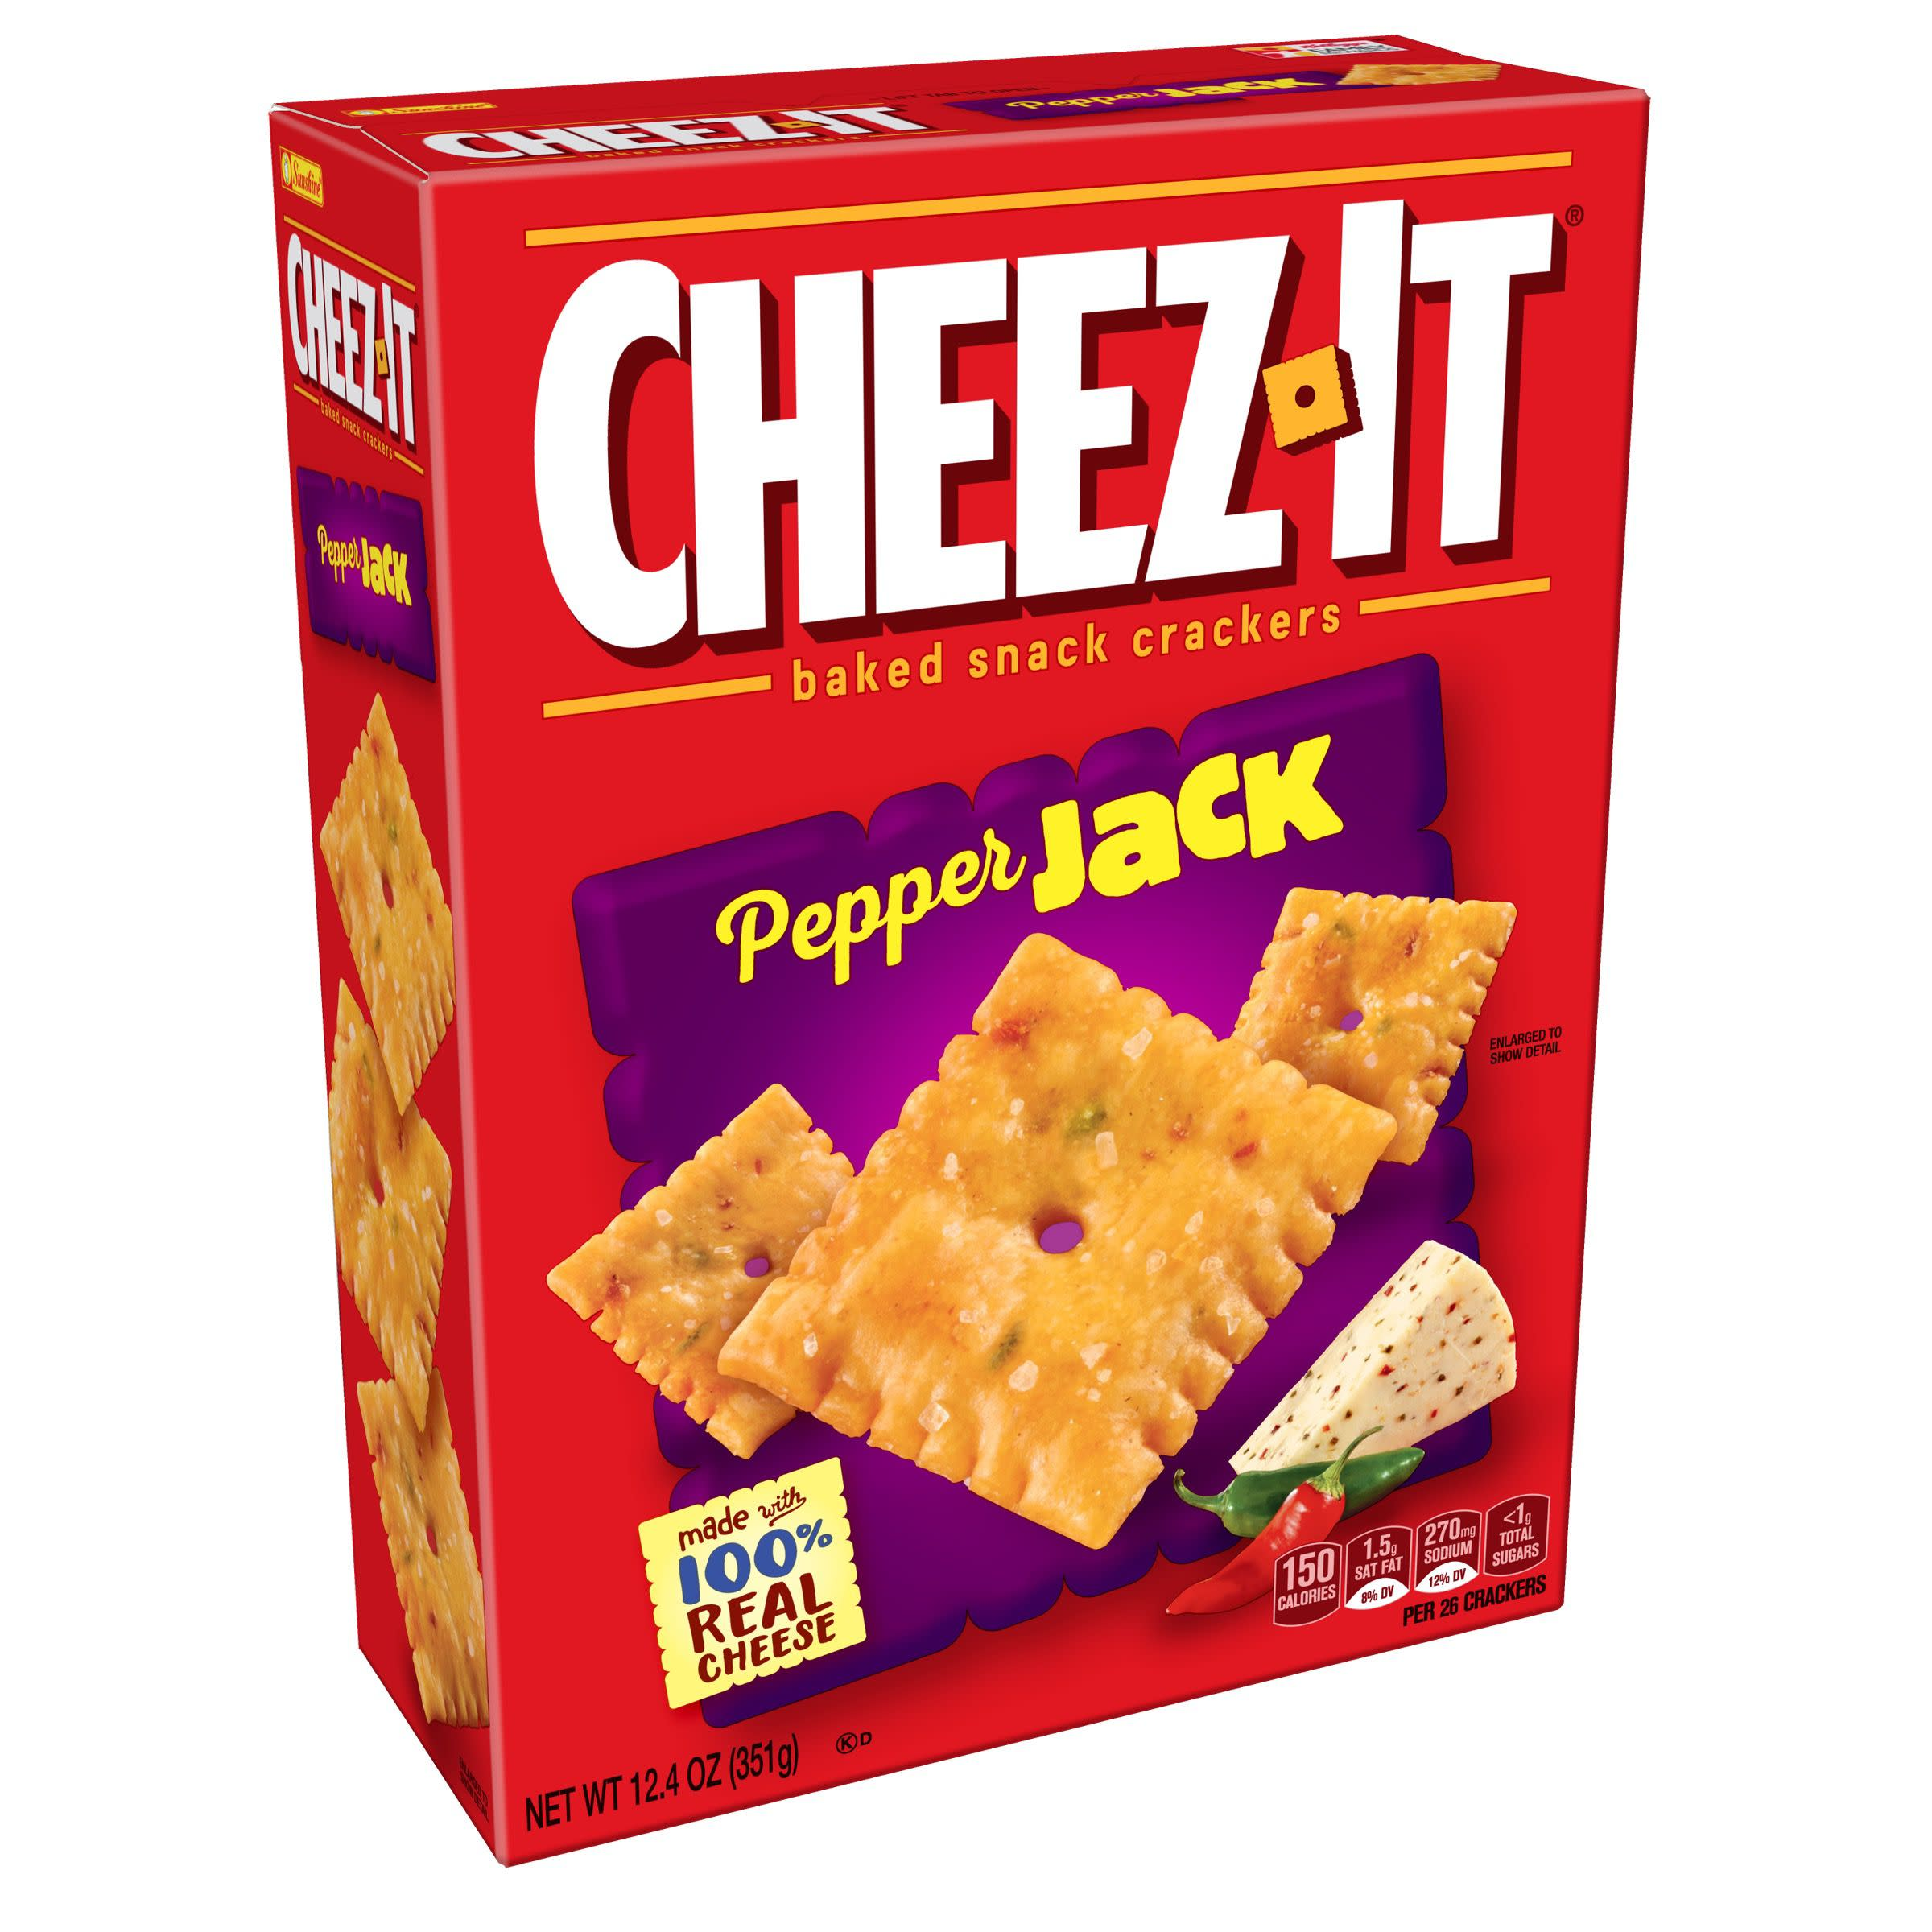 Cheez-It Baked Snack Cheese Crackers Pepper Jack 12.4 oz